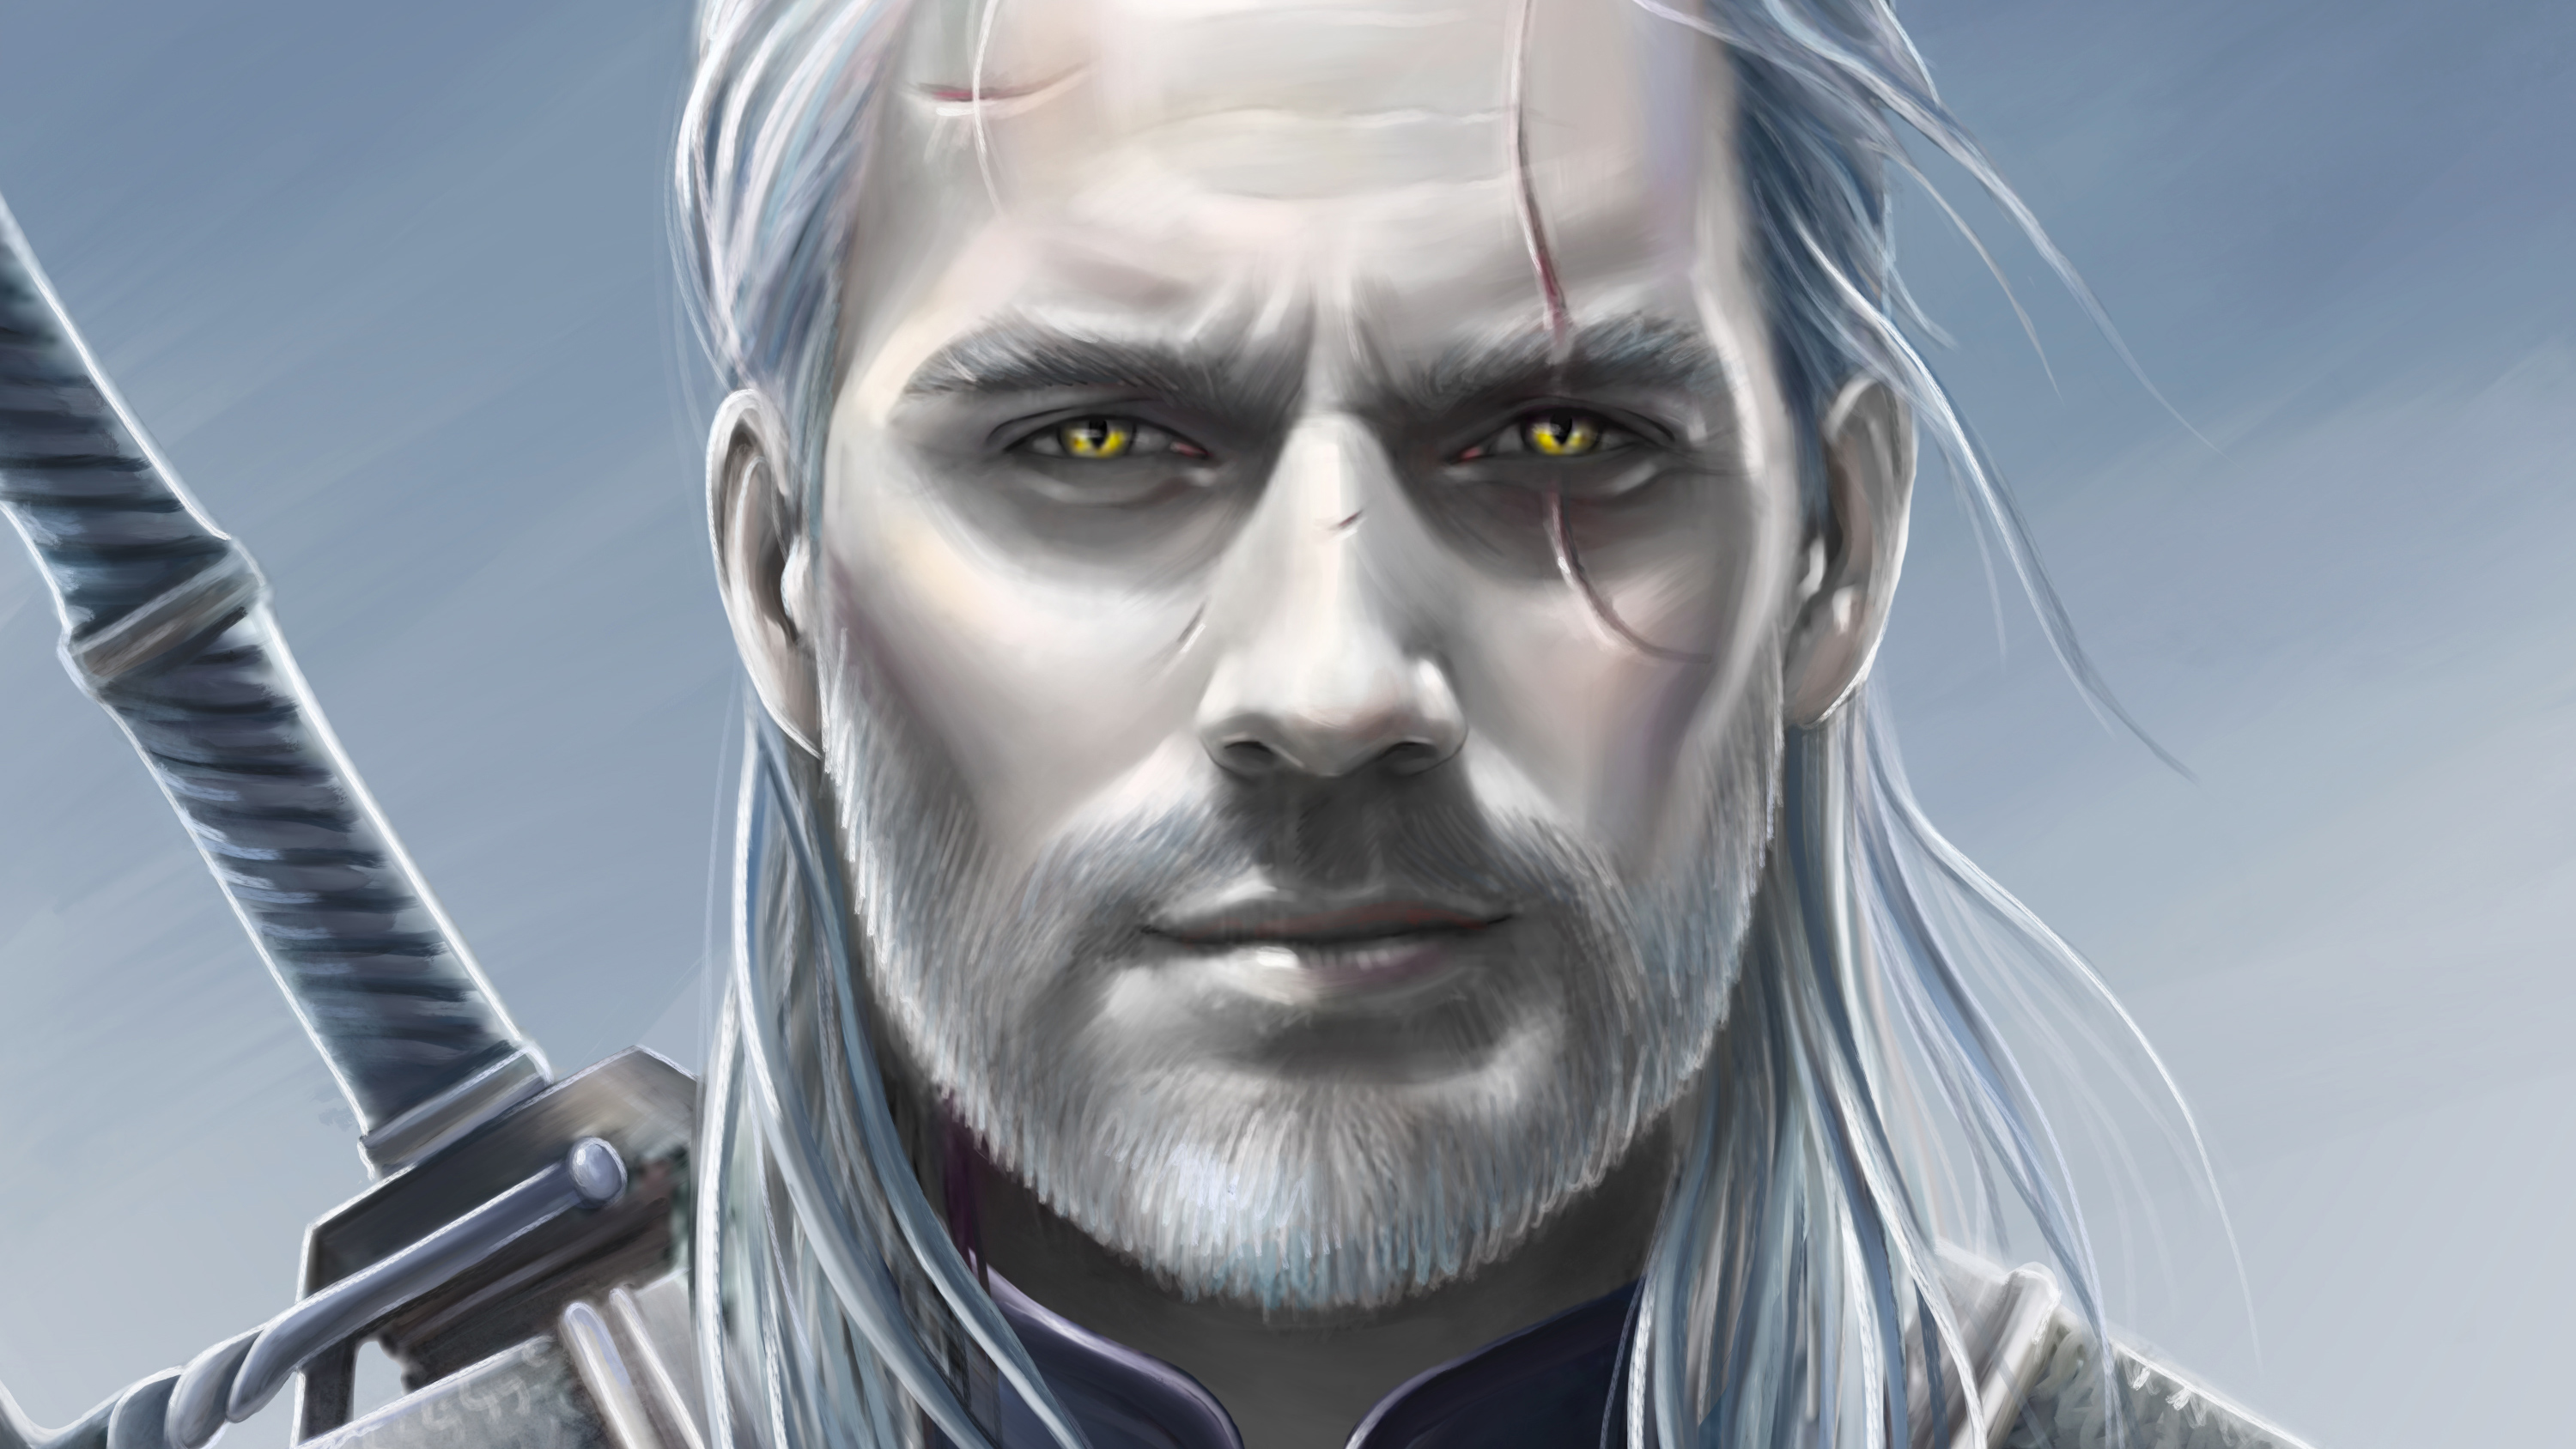 Henry Cavill As Geralt The Witcher Hd Tv Shows 4k